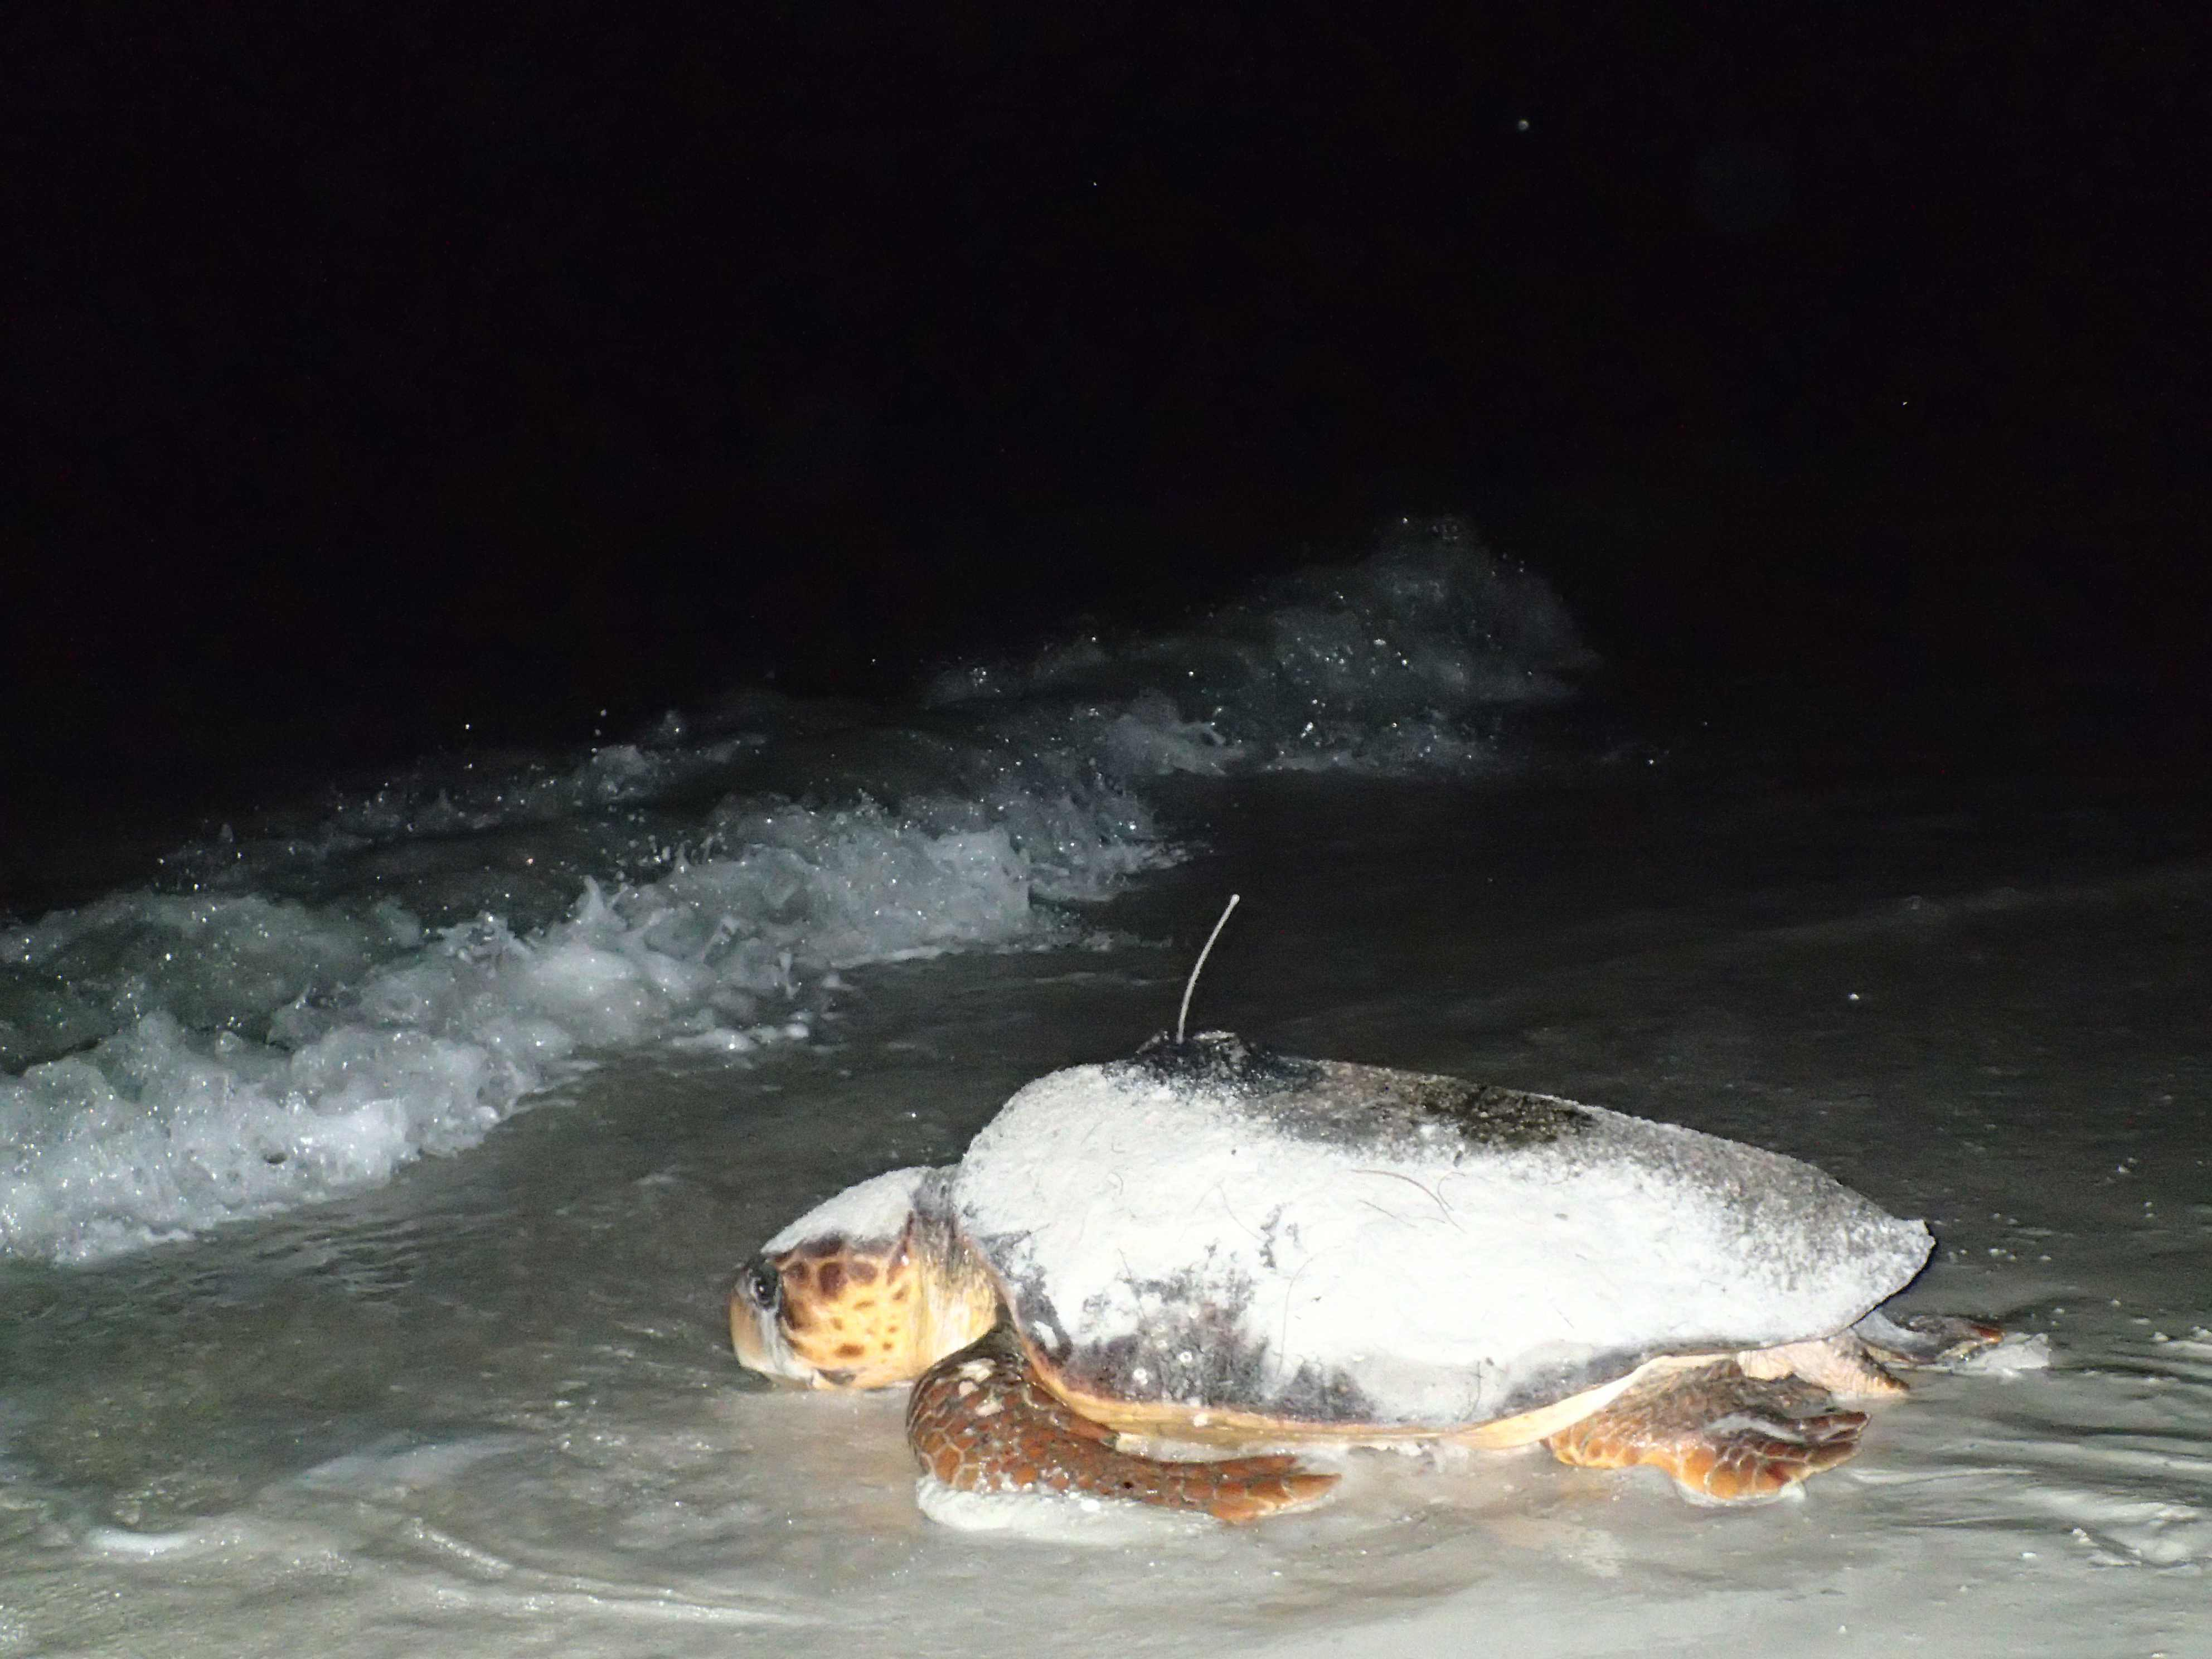 For Sea Turtles, There's No Place Like Home